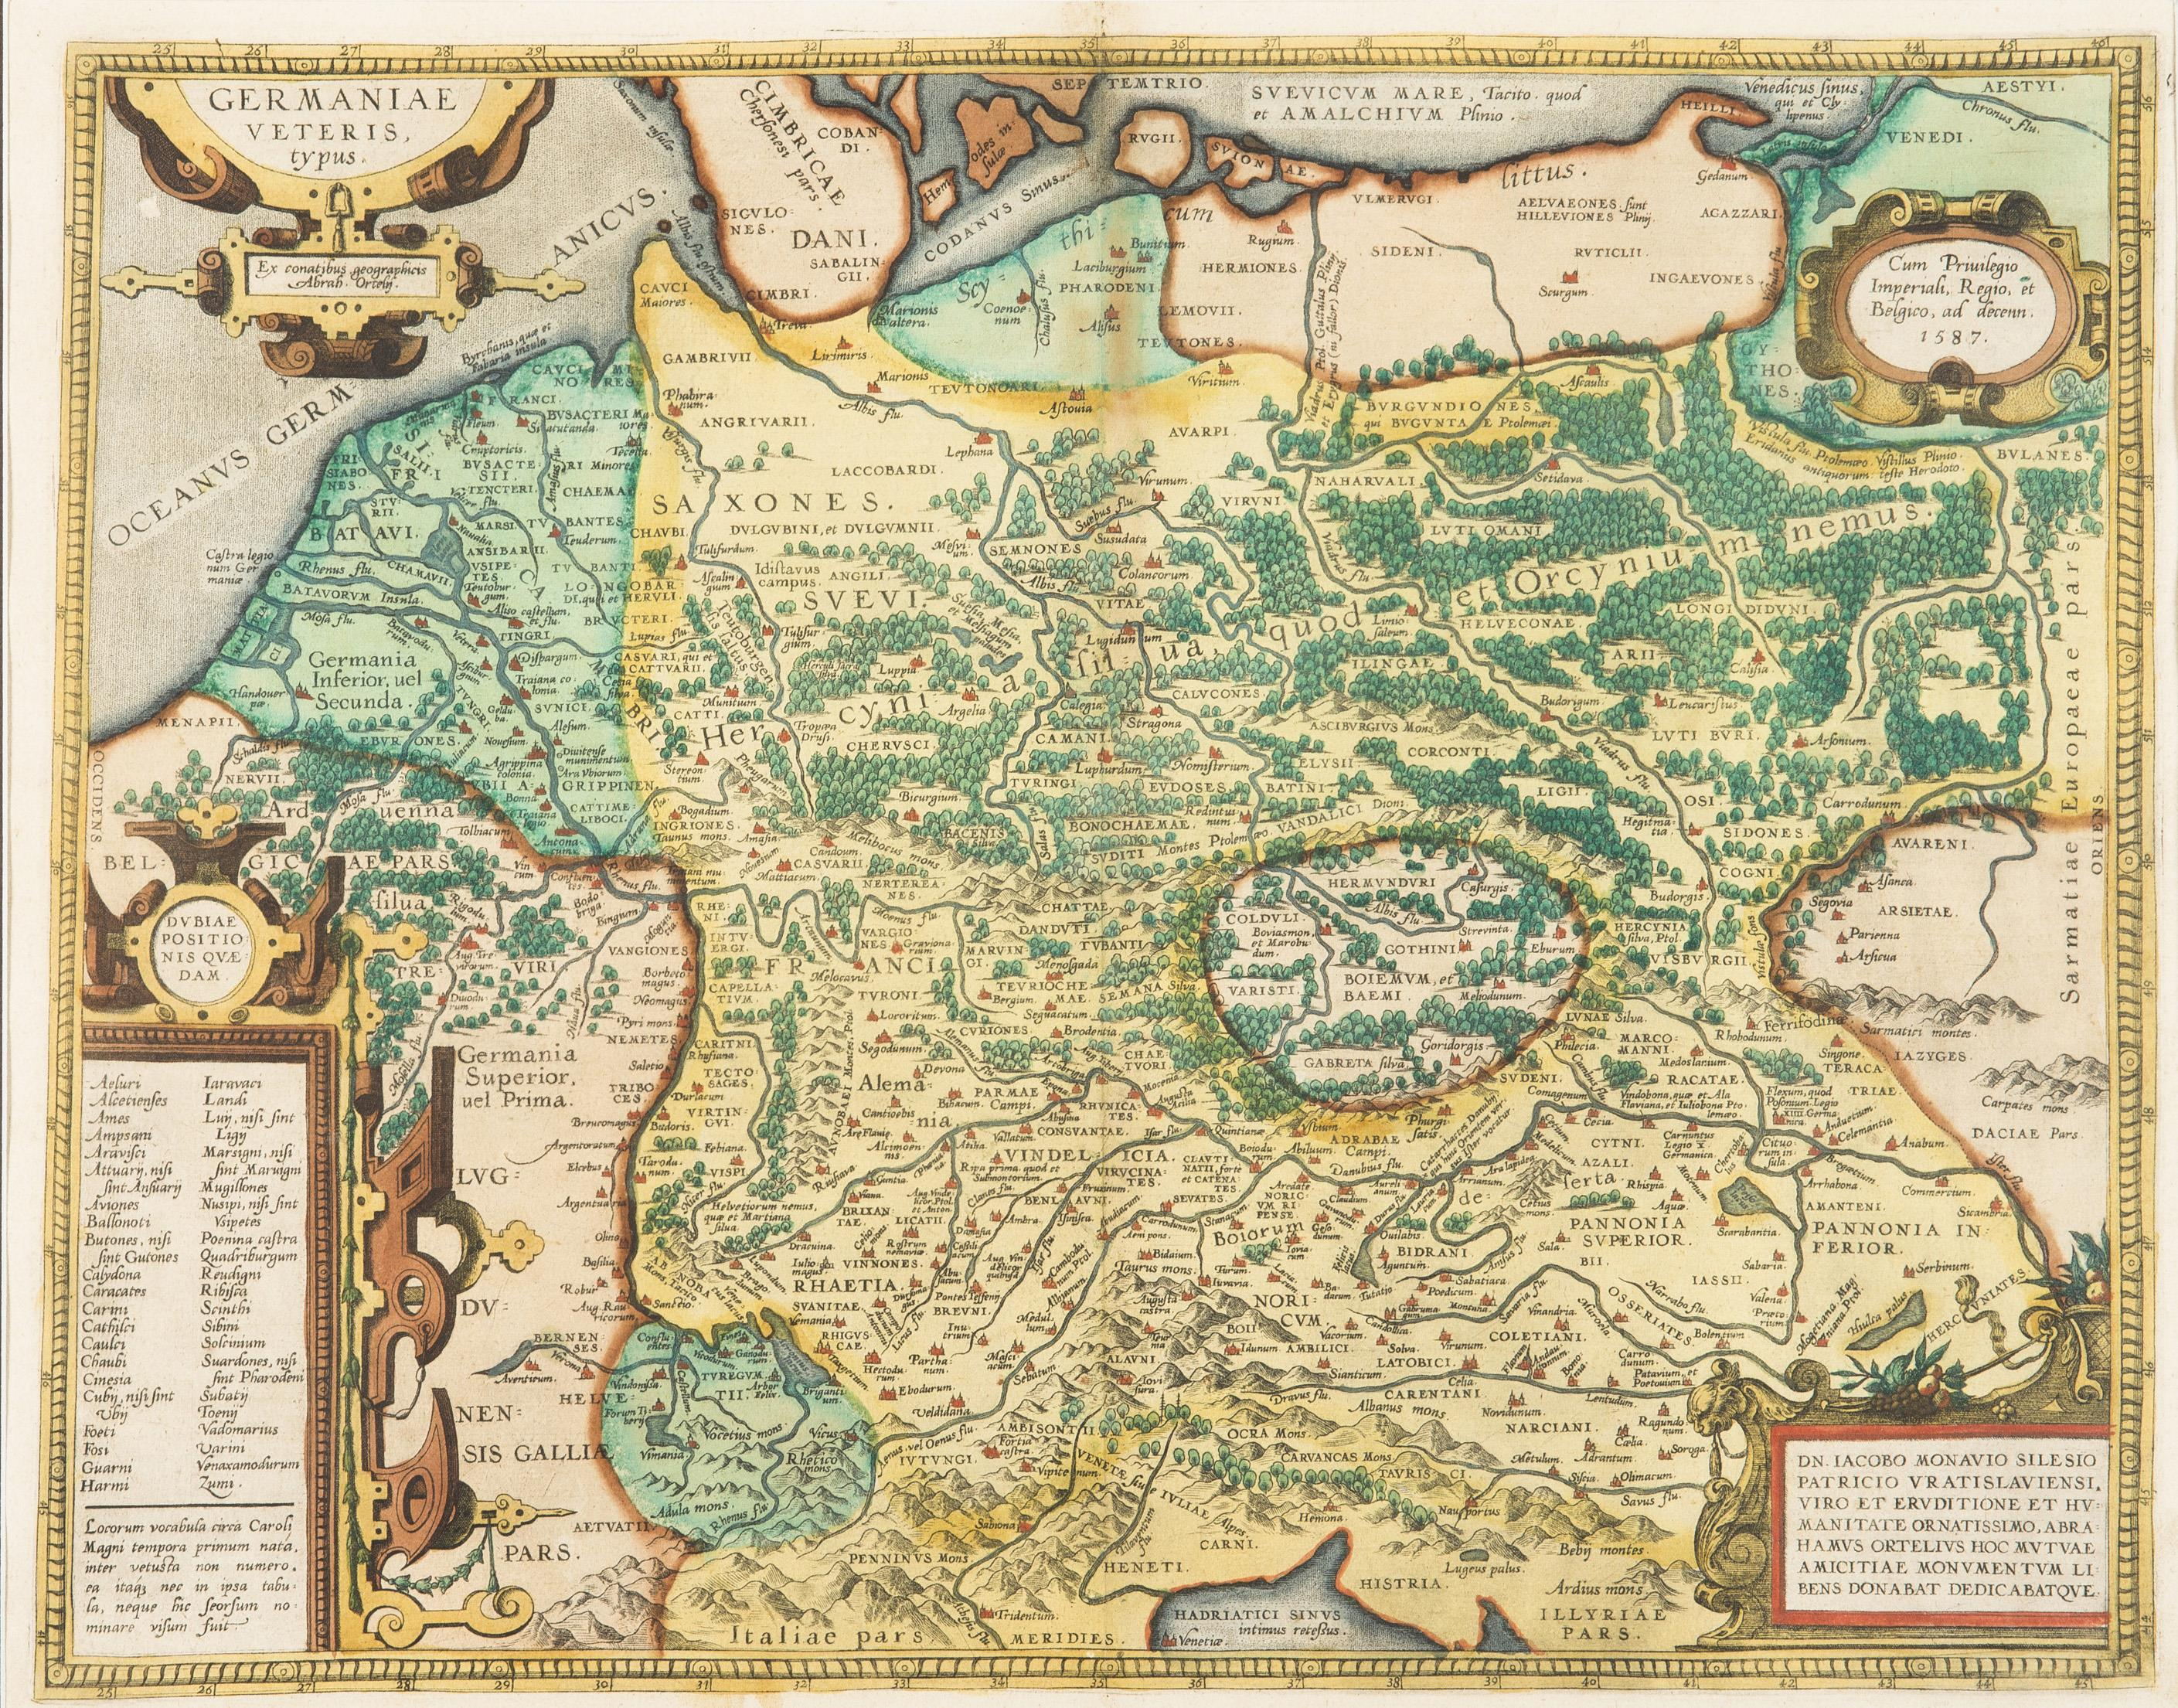 ORTELIUS AHAM, A MAP OF GERMANY, around 1590 ... on map of european countries, map of amsterdam, map of prussia, map of romania, map of norway, map of rhine river, map of austria, map of switzerland, map of luxembourg, map of czech republic, map of united states, map of german cities, map of denmark, map of bundesliga teams, map of hungary, map of berlin, map of uk, map of netherlands, map of czechoslovakia, map of bavaria,